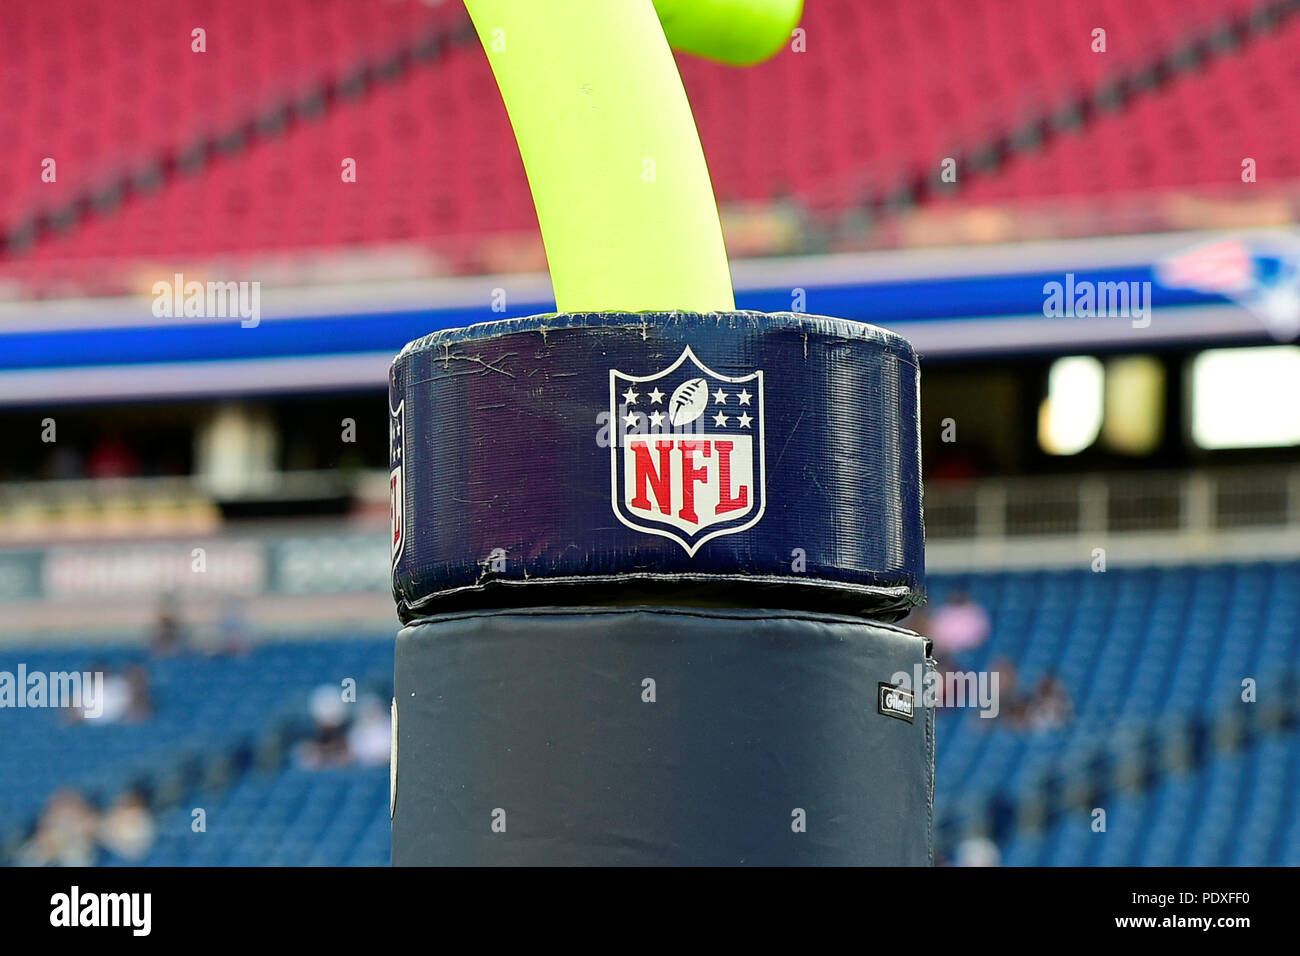 August 9, 2018: The BFL logo sits atop padding on a goal post at the NFL pre-season football game between the Washington Redskins and the New England Patriots at Gillette Stadium, in Foxborough, Massachusetts.The Patriots defeat the Redskins 26-17. Eric Canha/CSM - Stock Image